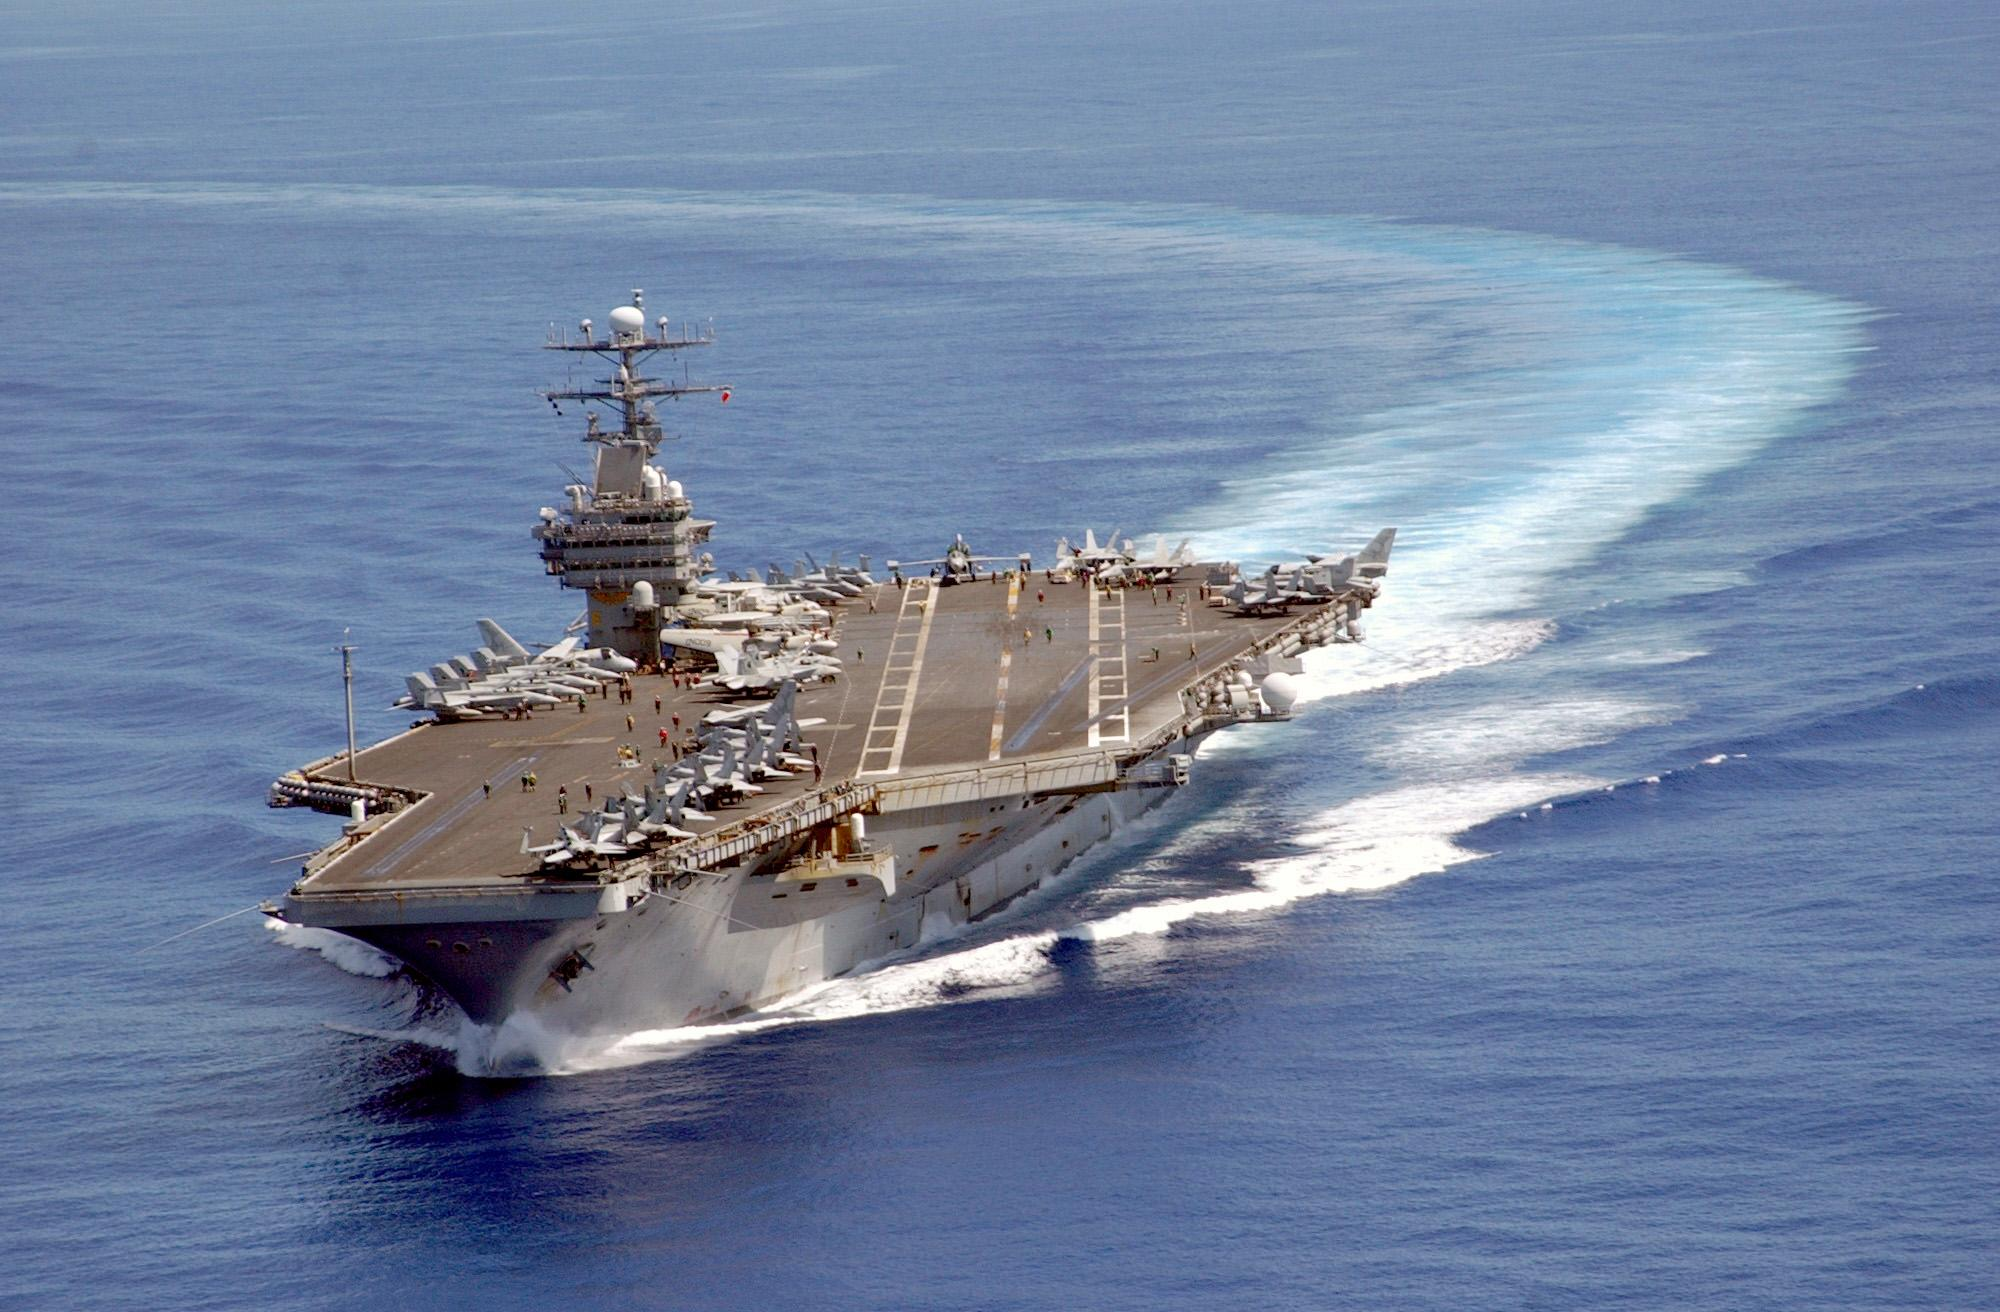 http://upload.wikimedia.org/wikipedia/commons/c/ce/USS_Carl_Vinson_on_patrol_in_the_Pacific_2003-06-10.jpg